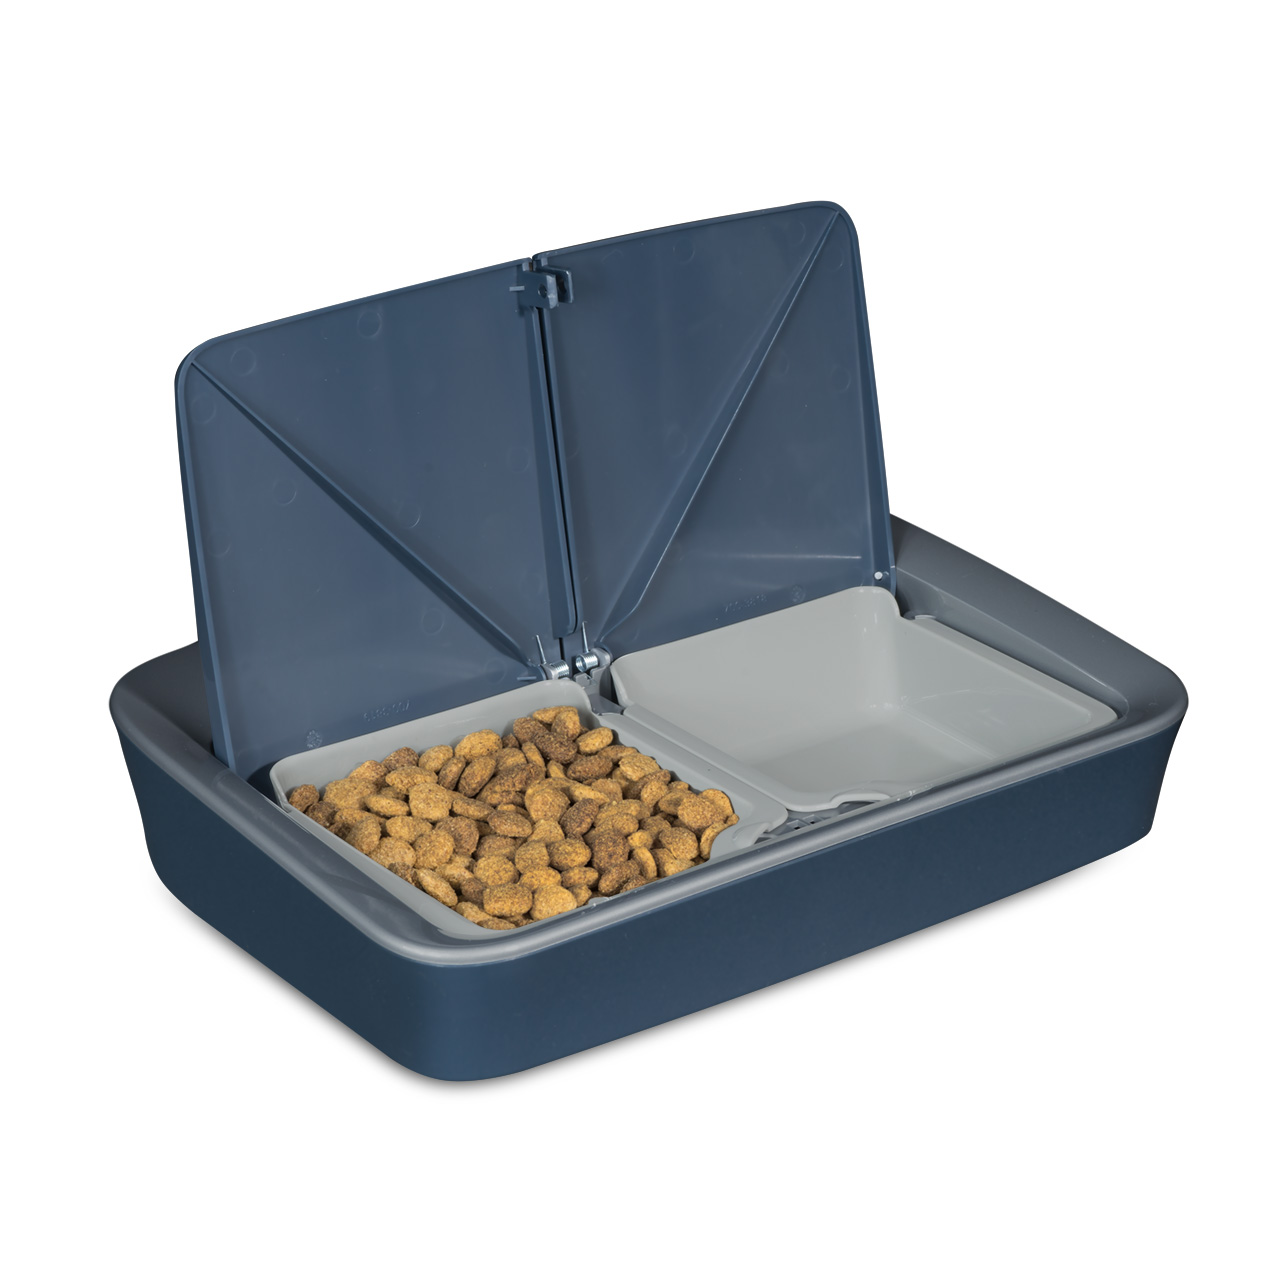 PFD00-15426 2-Meal Feeder_Product_Left Angle_Both Open_Food